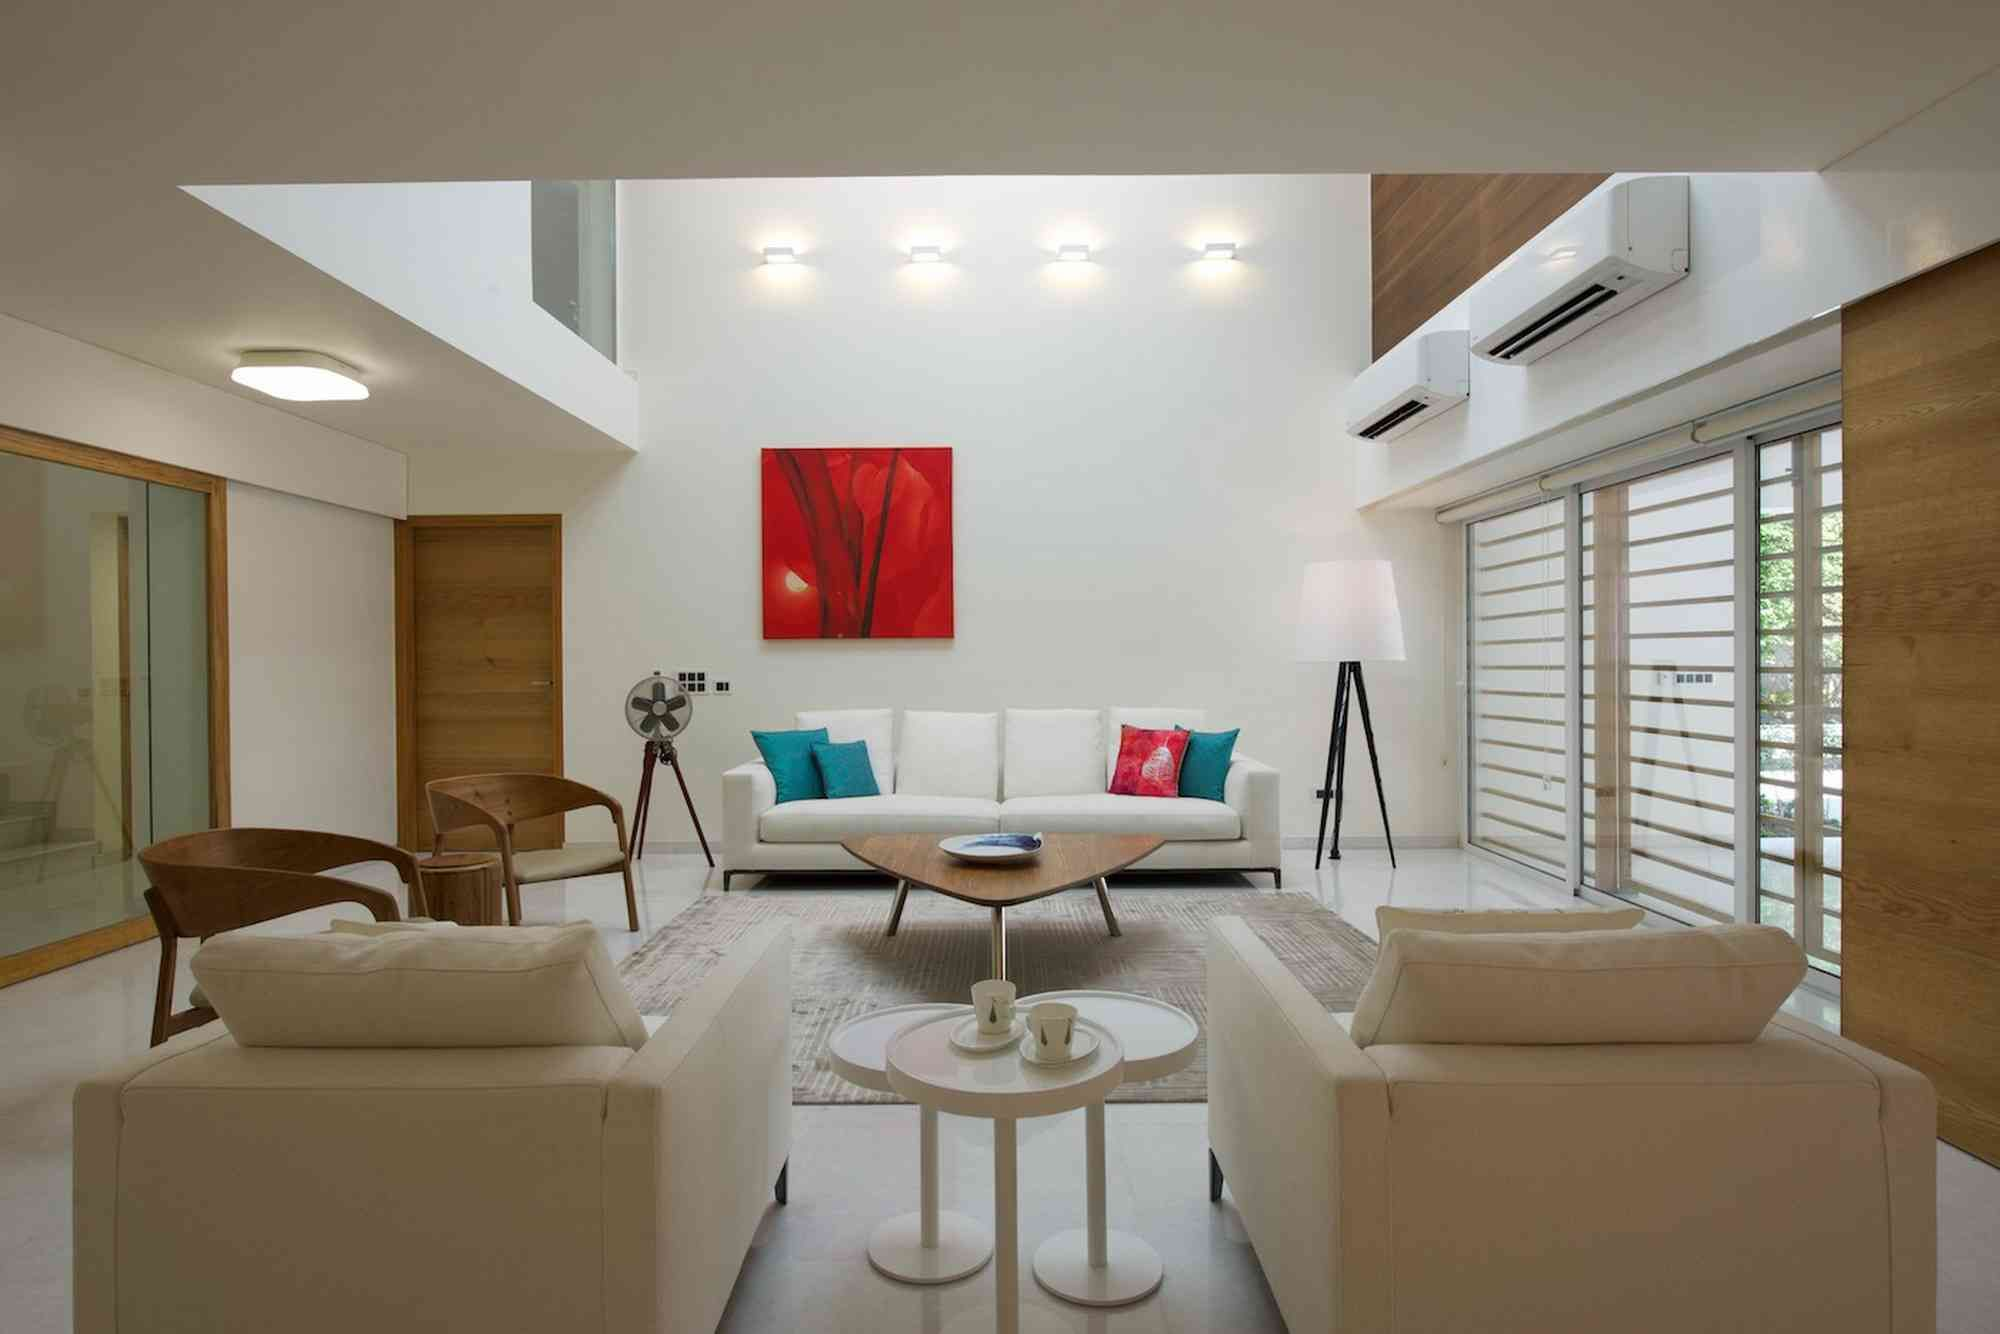 Home interior design kerala living room in white with splashes of red and turquoise  ashish